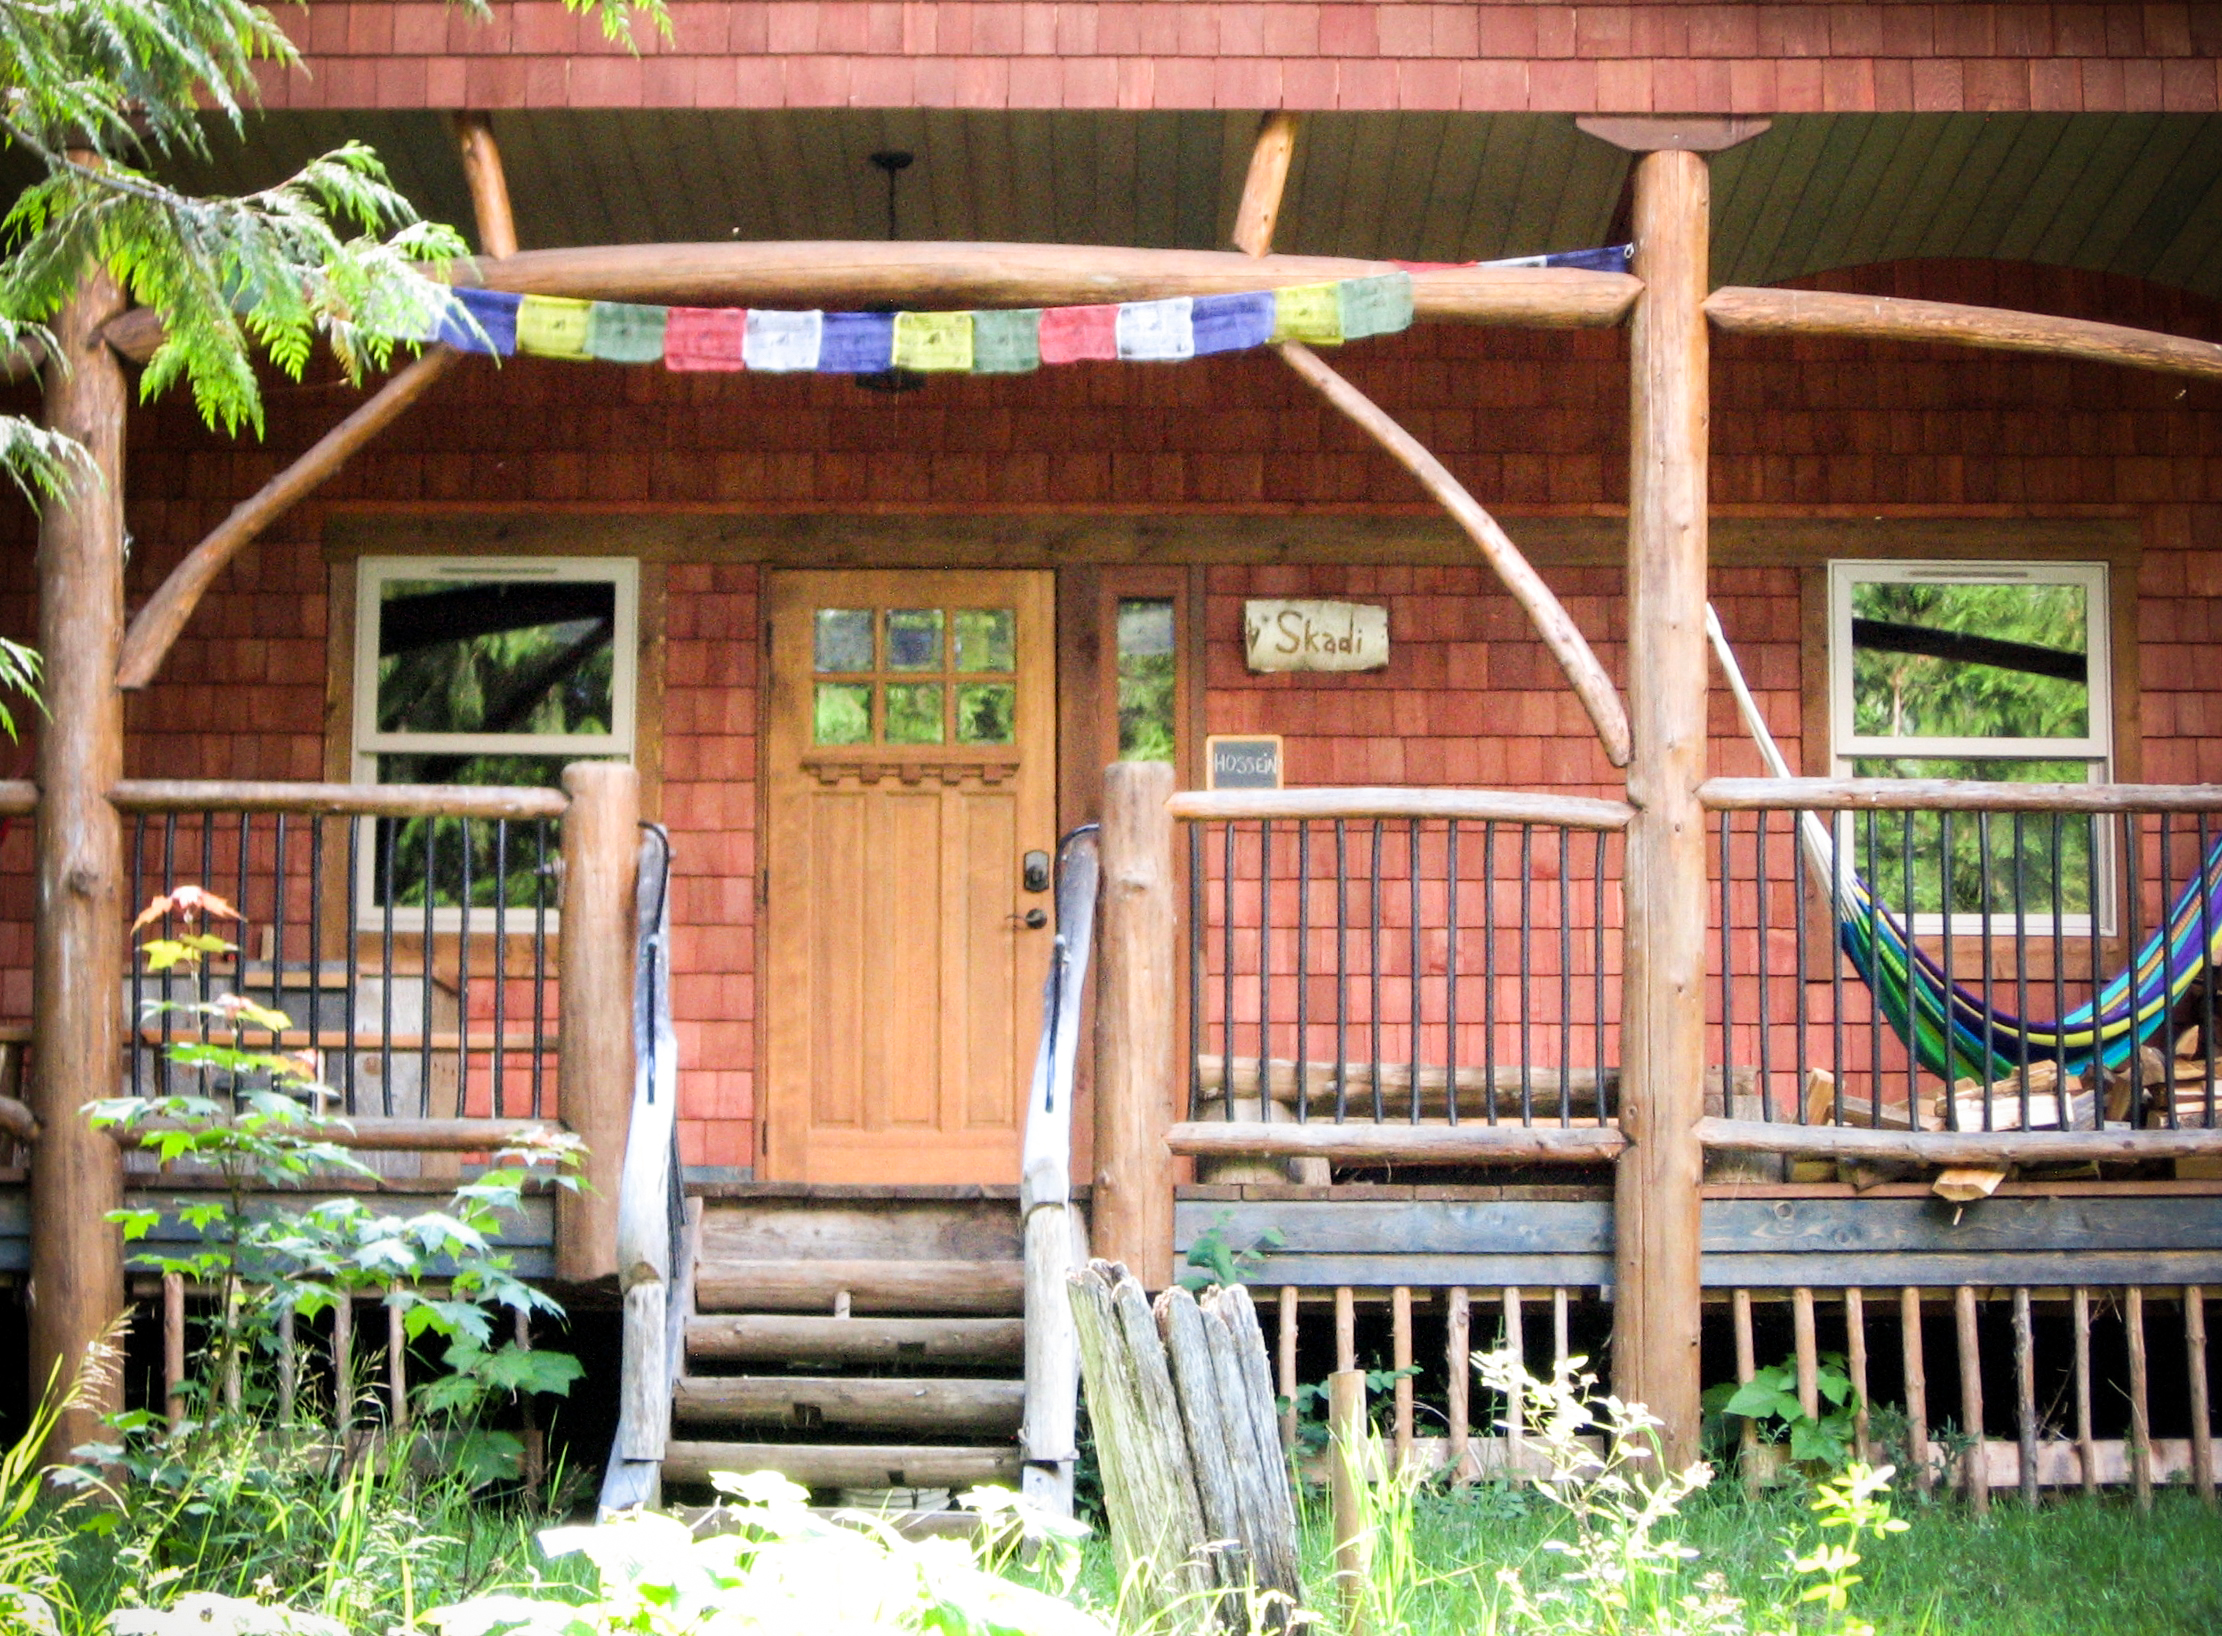 Skadi - This cabin is set against the Bonnington range. With two bedrooms, a fully equipped kitchen, a large common room (living/dining room), and a washroom with shower, this chalet can comfortably accommodate up to six people. It provides the cozy comfort of heated flooring as well as the romance and appeal of a wood stove. Skadi is the goddess of winter.